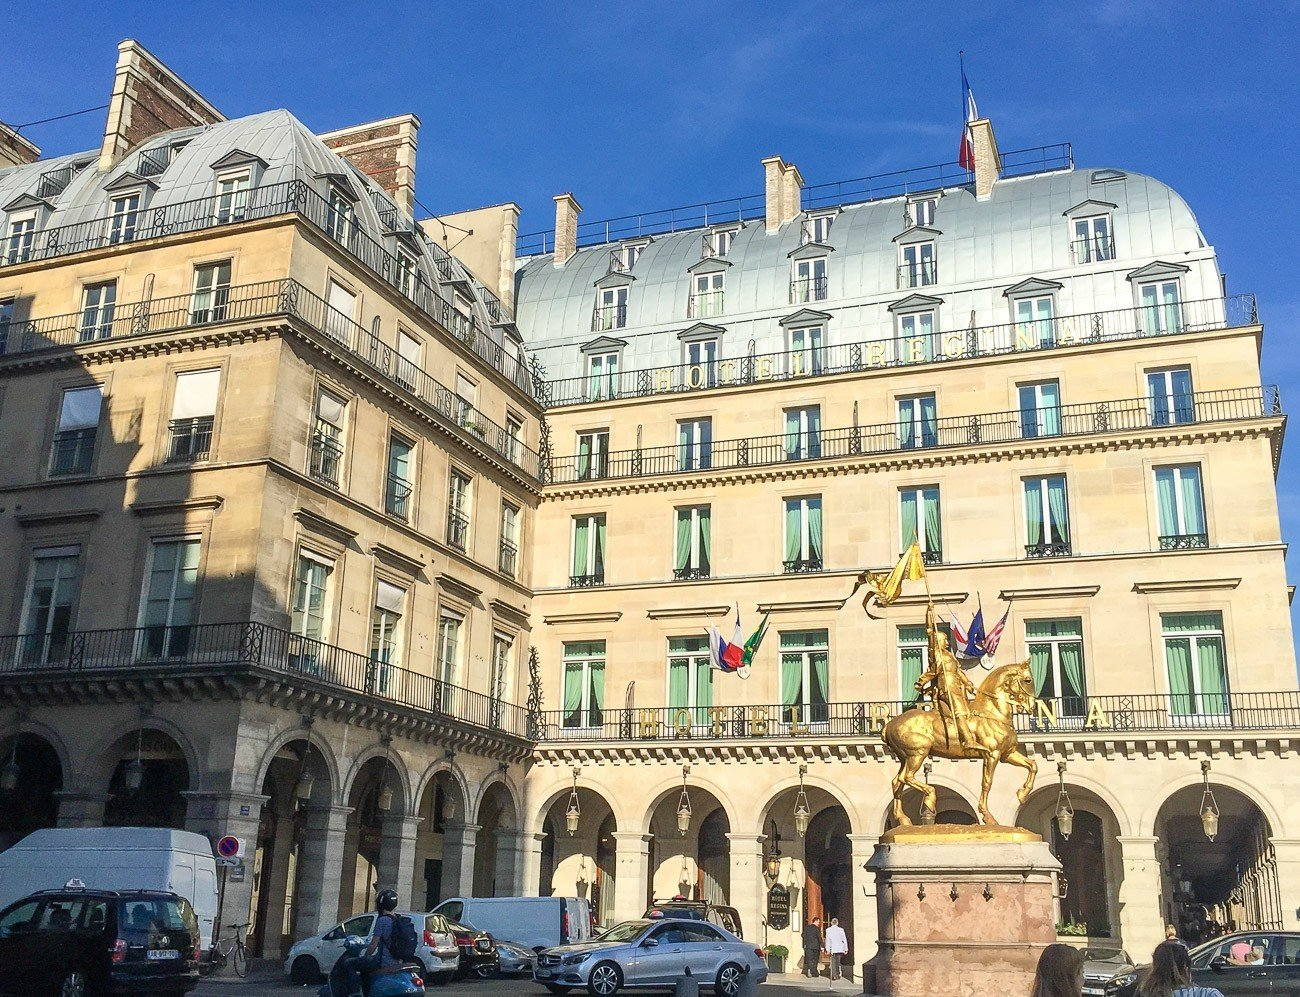 Hotel Regina in Paris has a perfect location across the street from the Louvre in the 1st arrondissement.